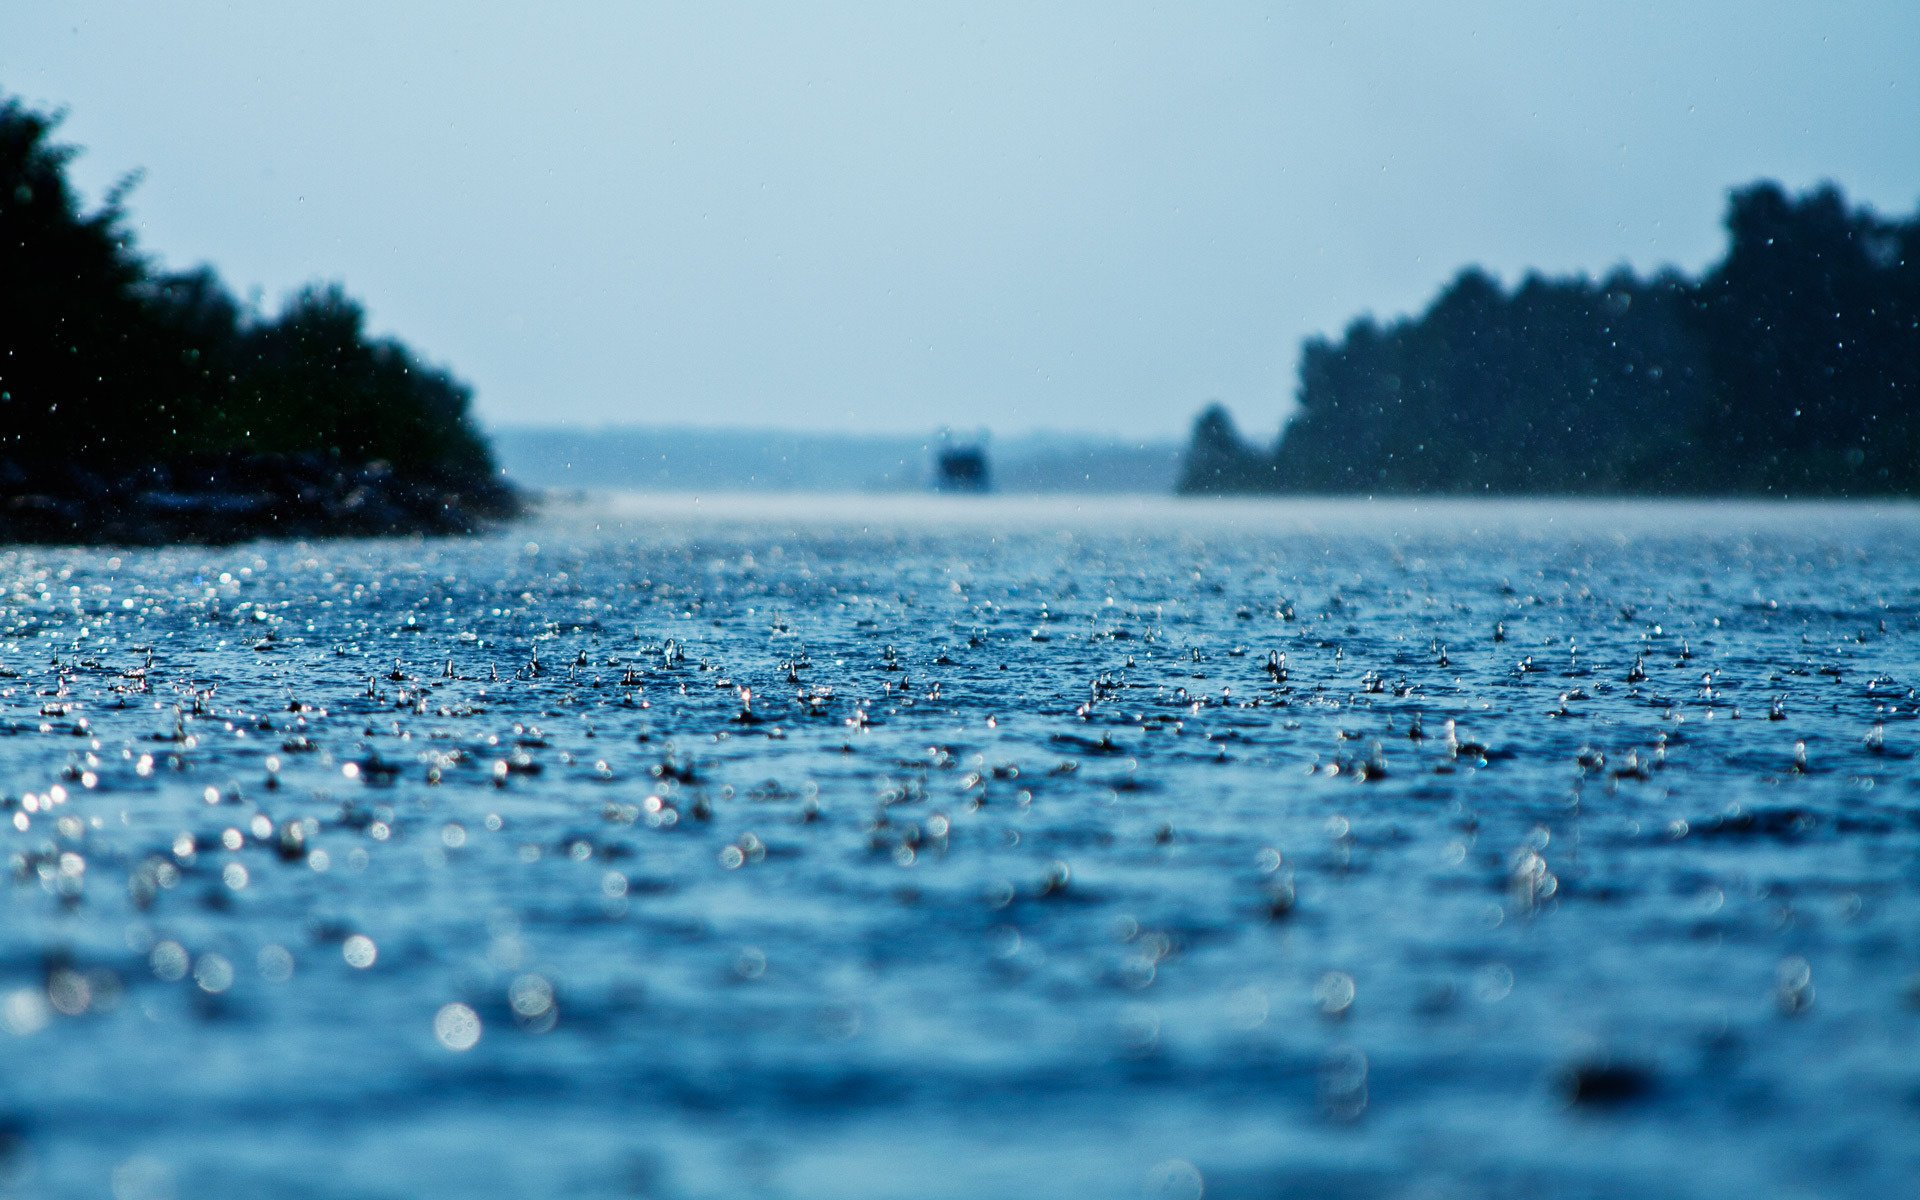 617 rain hd wallpapers | background images - wallpaper abyss